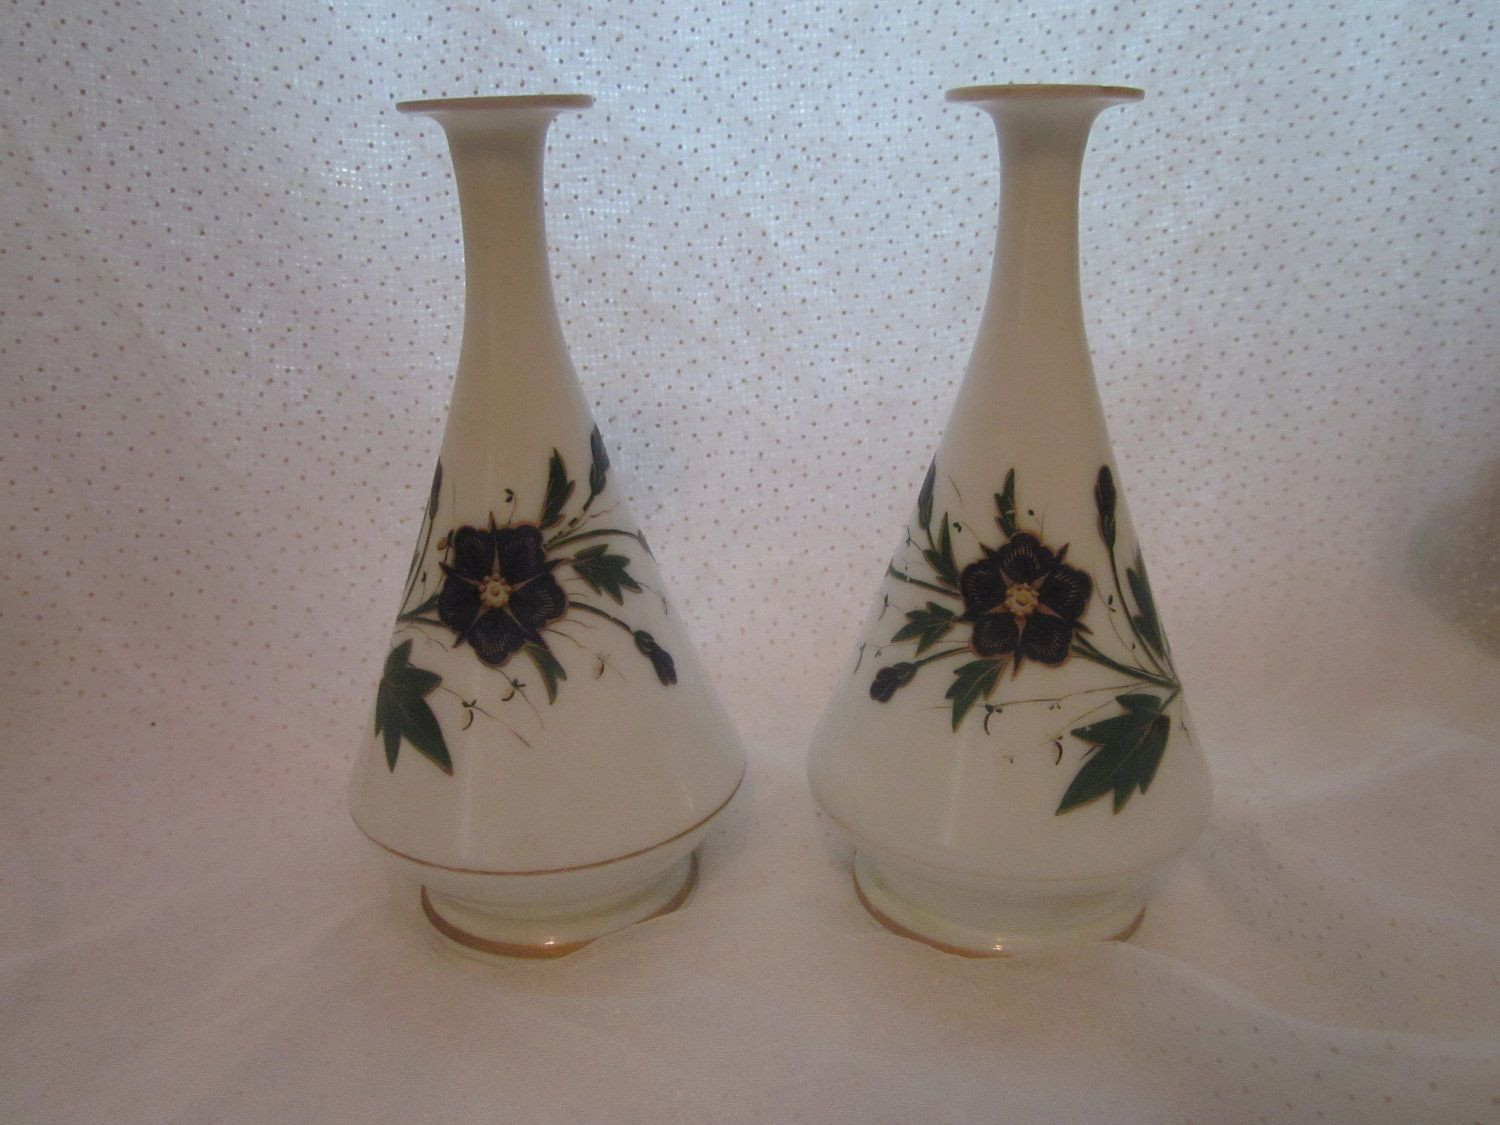 lenox small bud vase of vintage milk glass vases with handpainted blue flowers bud vase lot pertaining to pair of shabby sweet vintage milk glass vases hand painted blue flowers by mendozamvintage on etsy